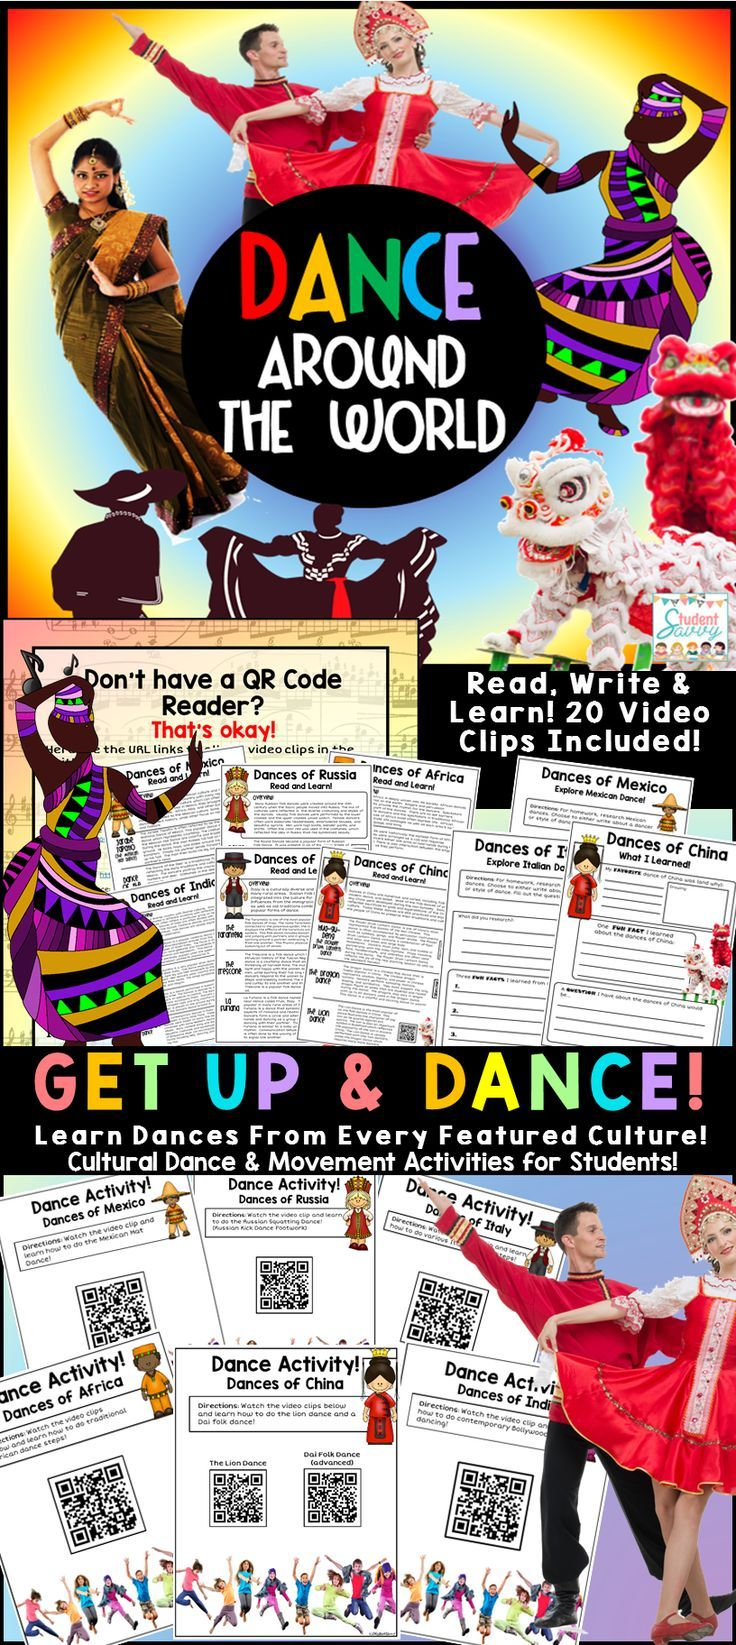 Multicultural Dance Activities for the Classroom. My elementary students will love this, perfect end of the year activity too!